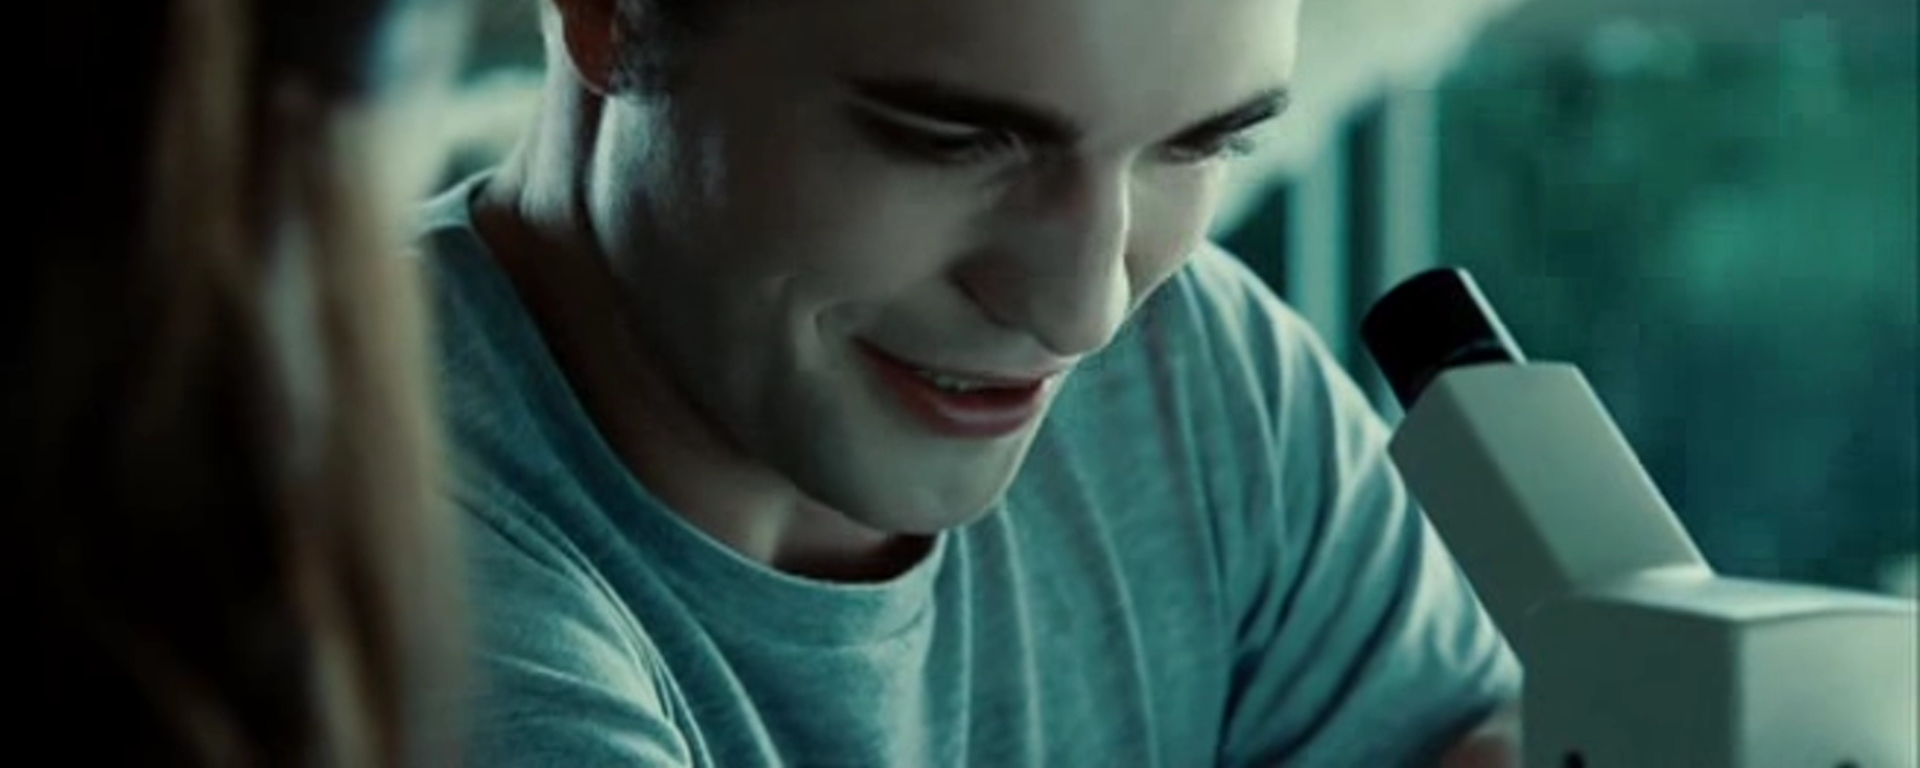 images crepusculo bella - photo #5